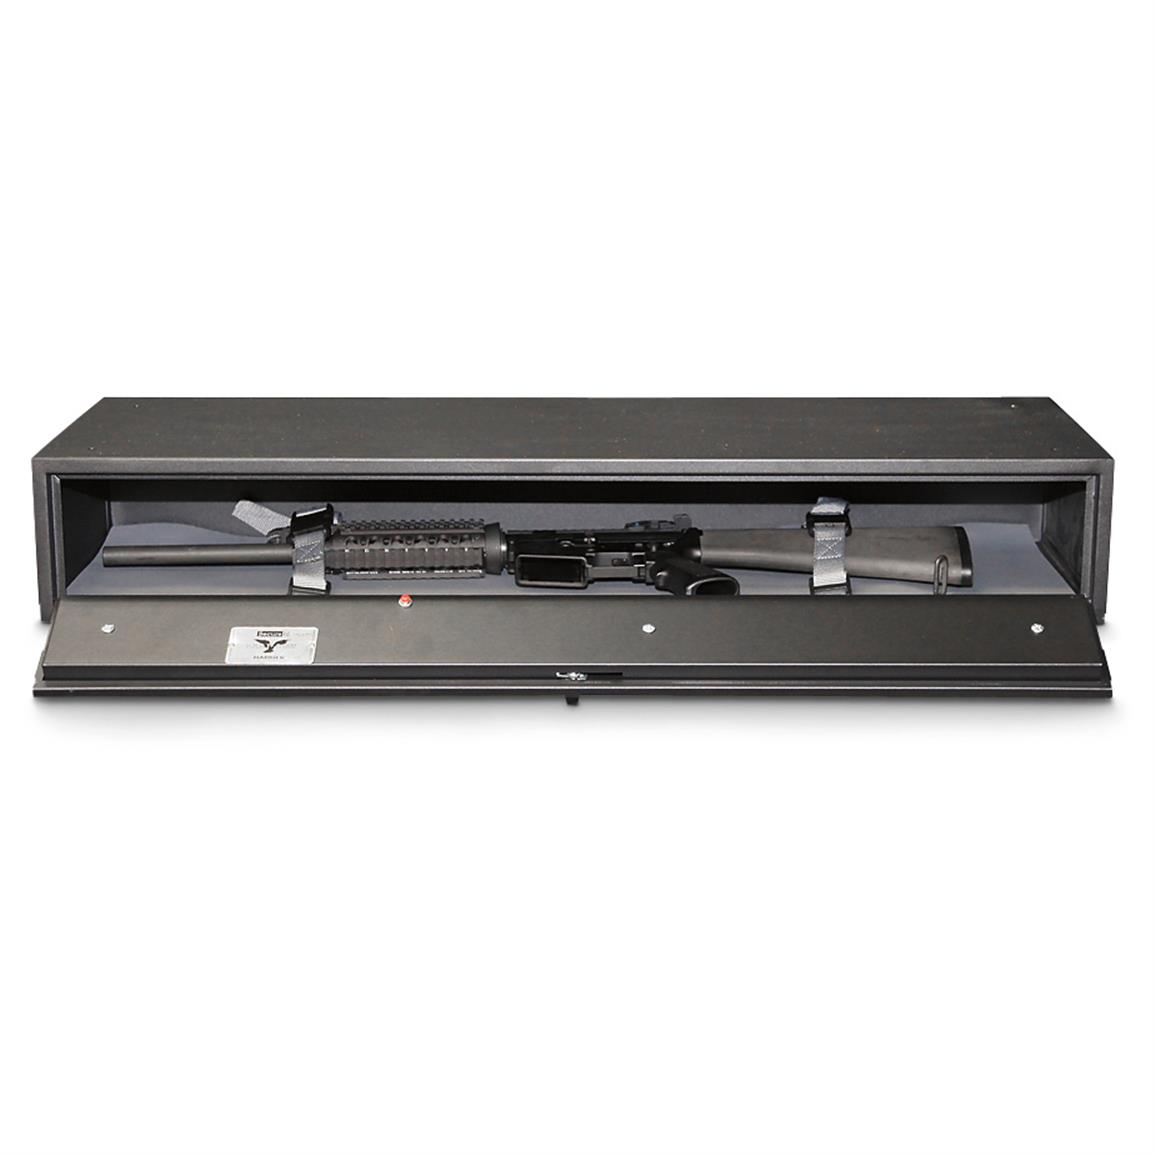 SecureIt Tactical Harrier Fast Box Firearm Storage